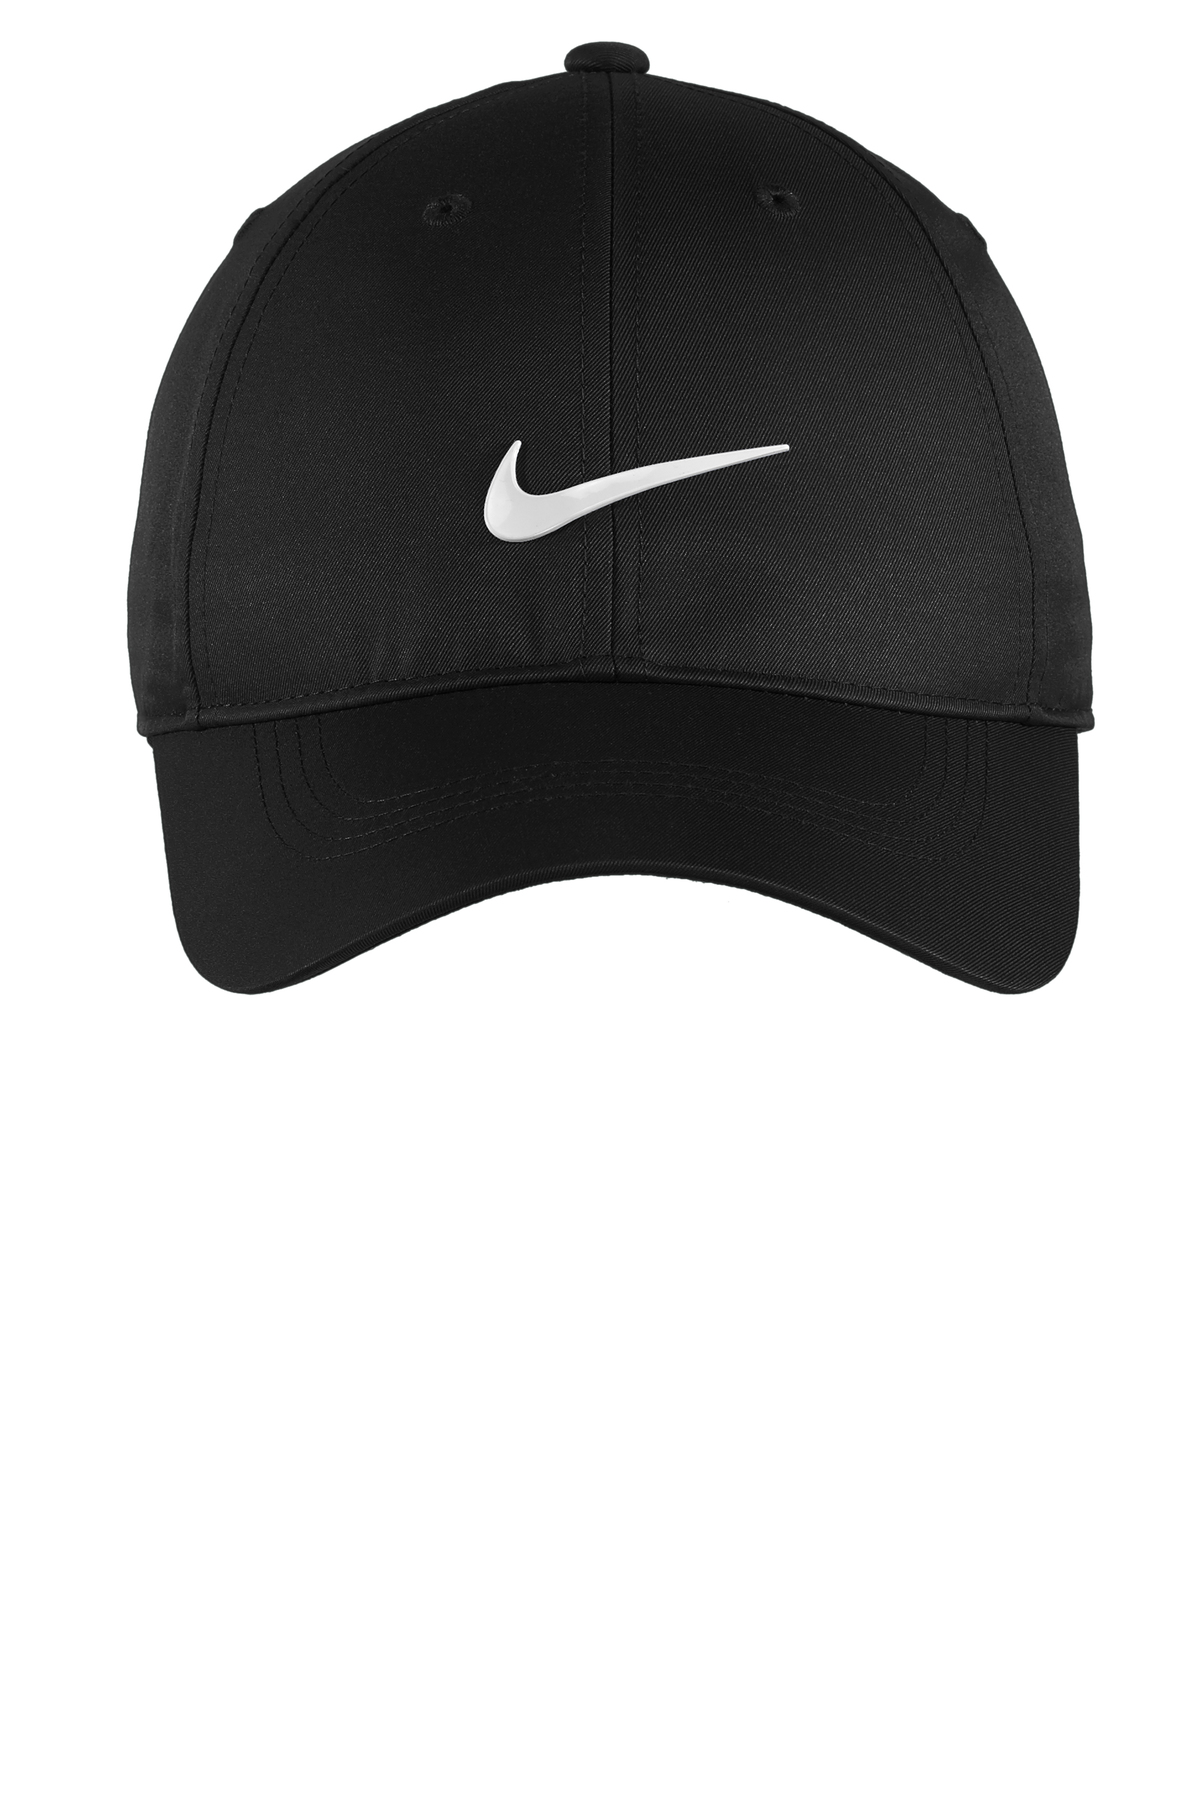 9bbd4eb3 ... Nike Dri-FIT Swoosh Front Cap. A maximum of 8 logos have been uploaded.  Please remove a logo from My Logos to continue